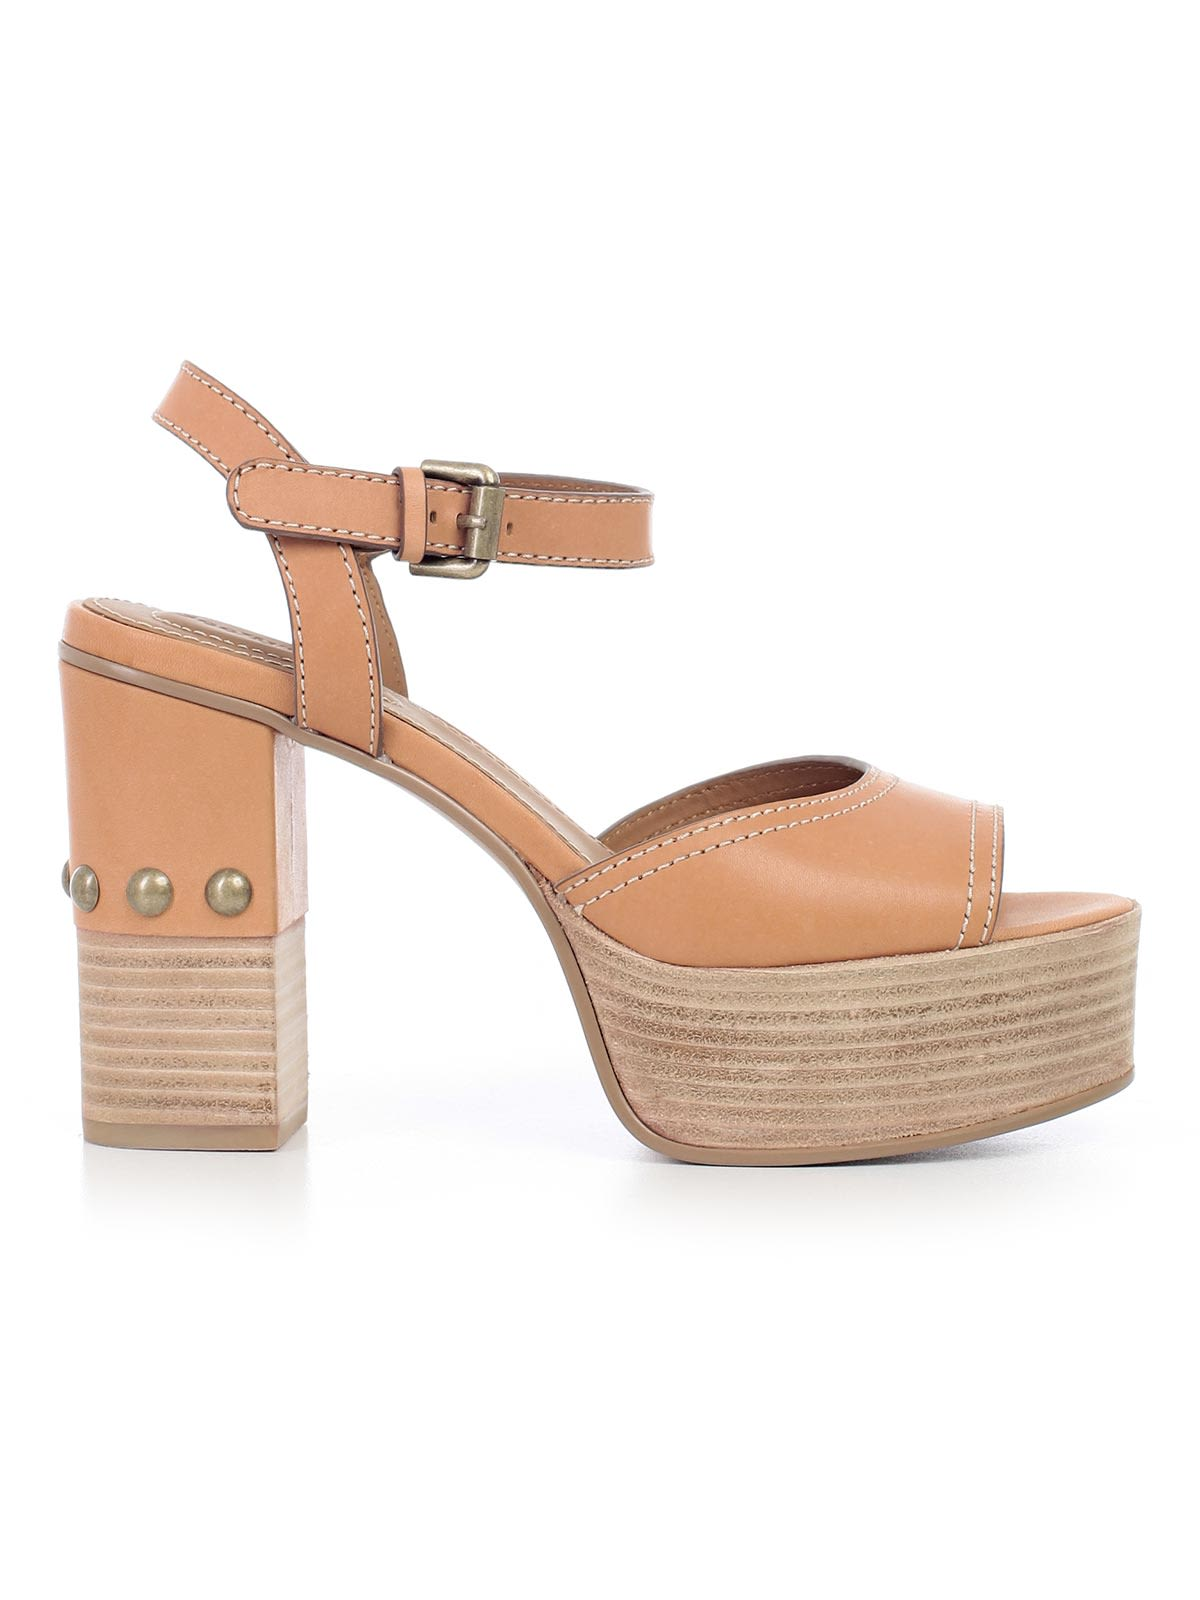 4f28934f69f8 See by Chloé See By Chloé Sandals - Basic - 10290728